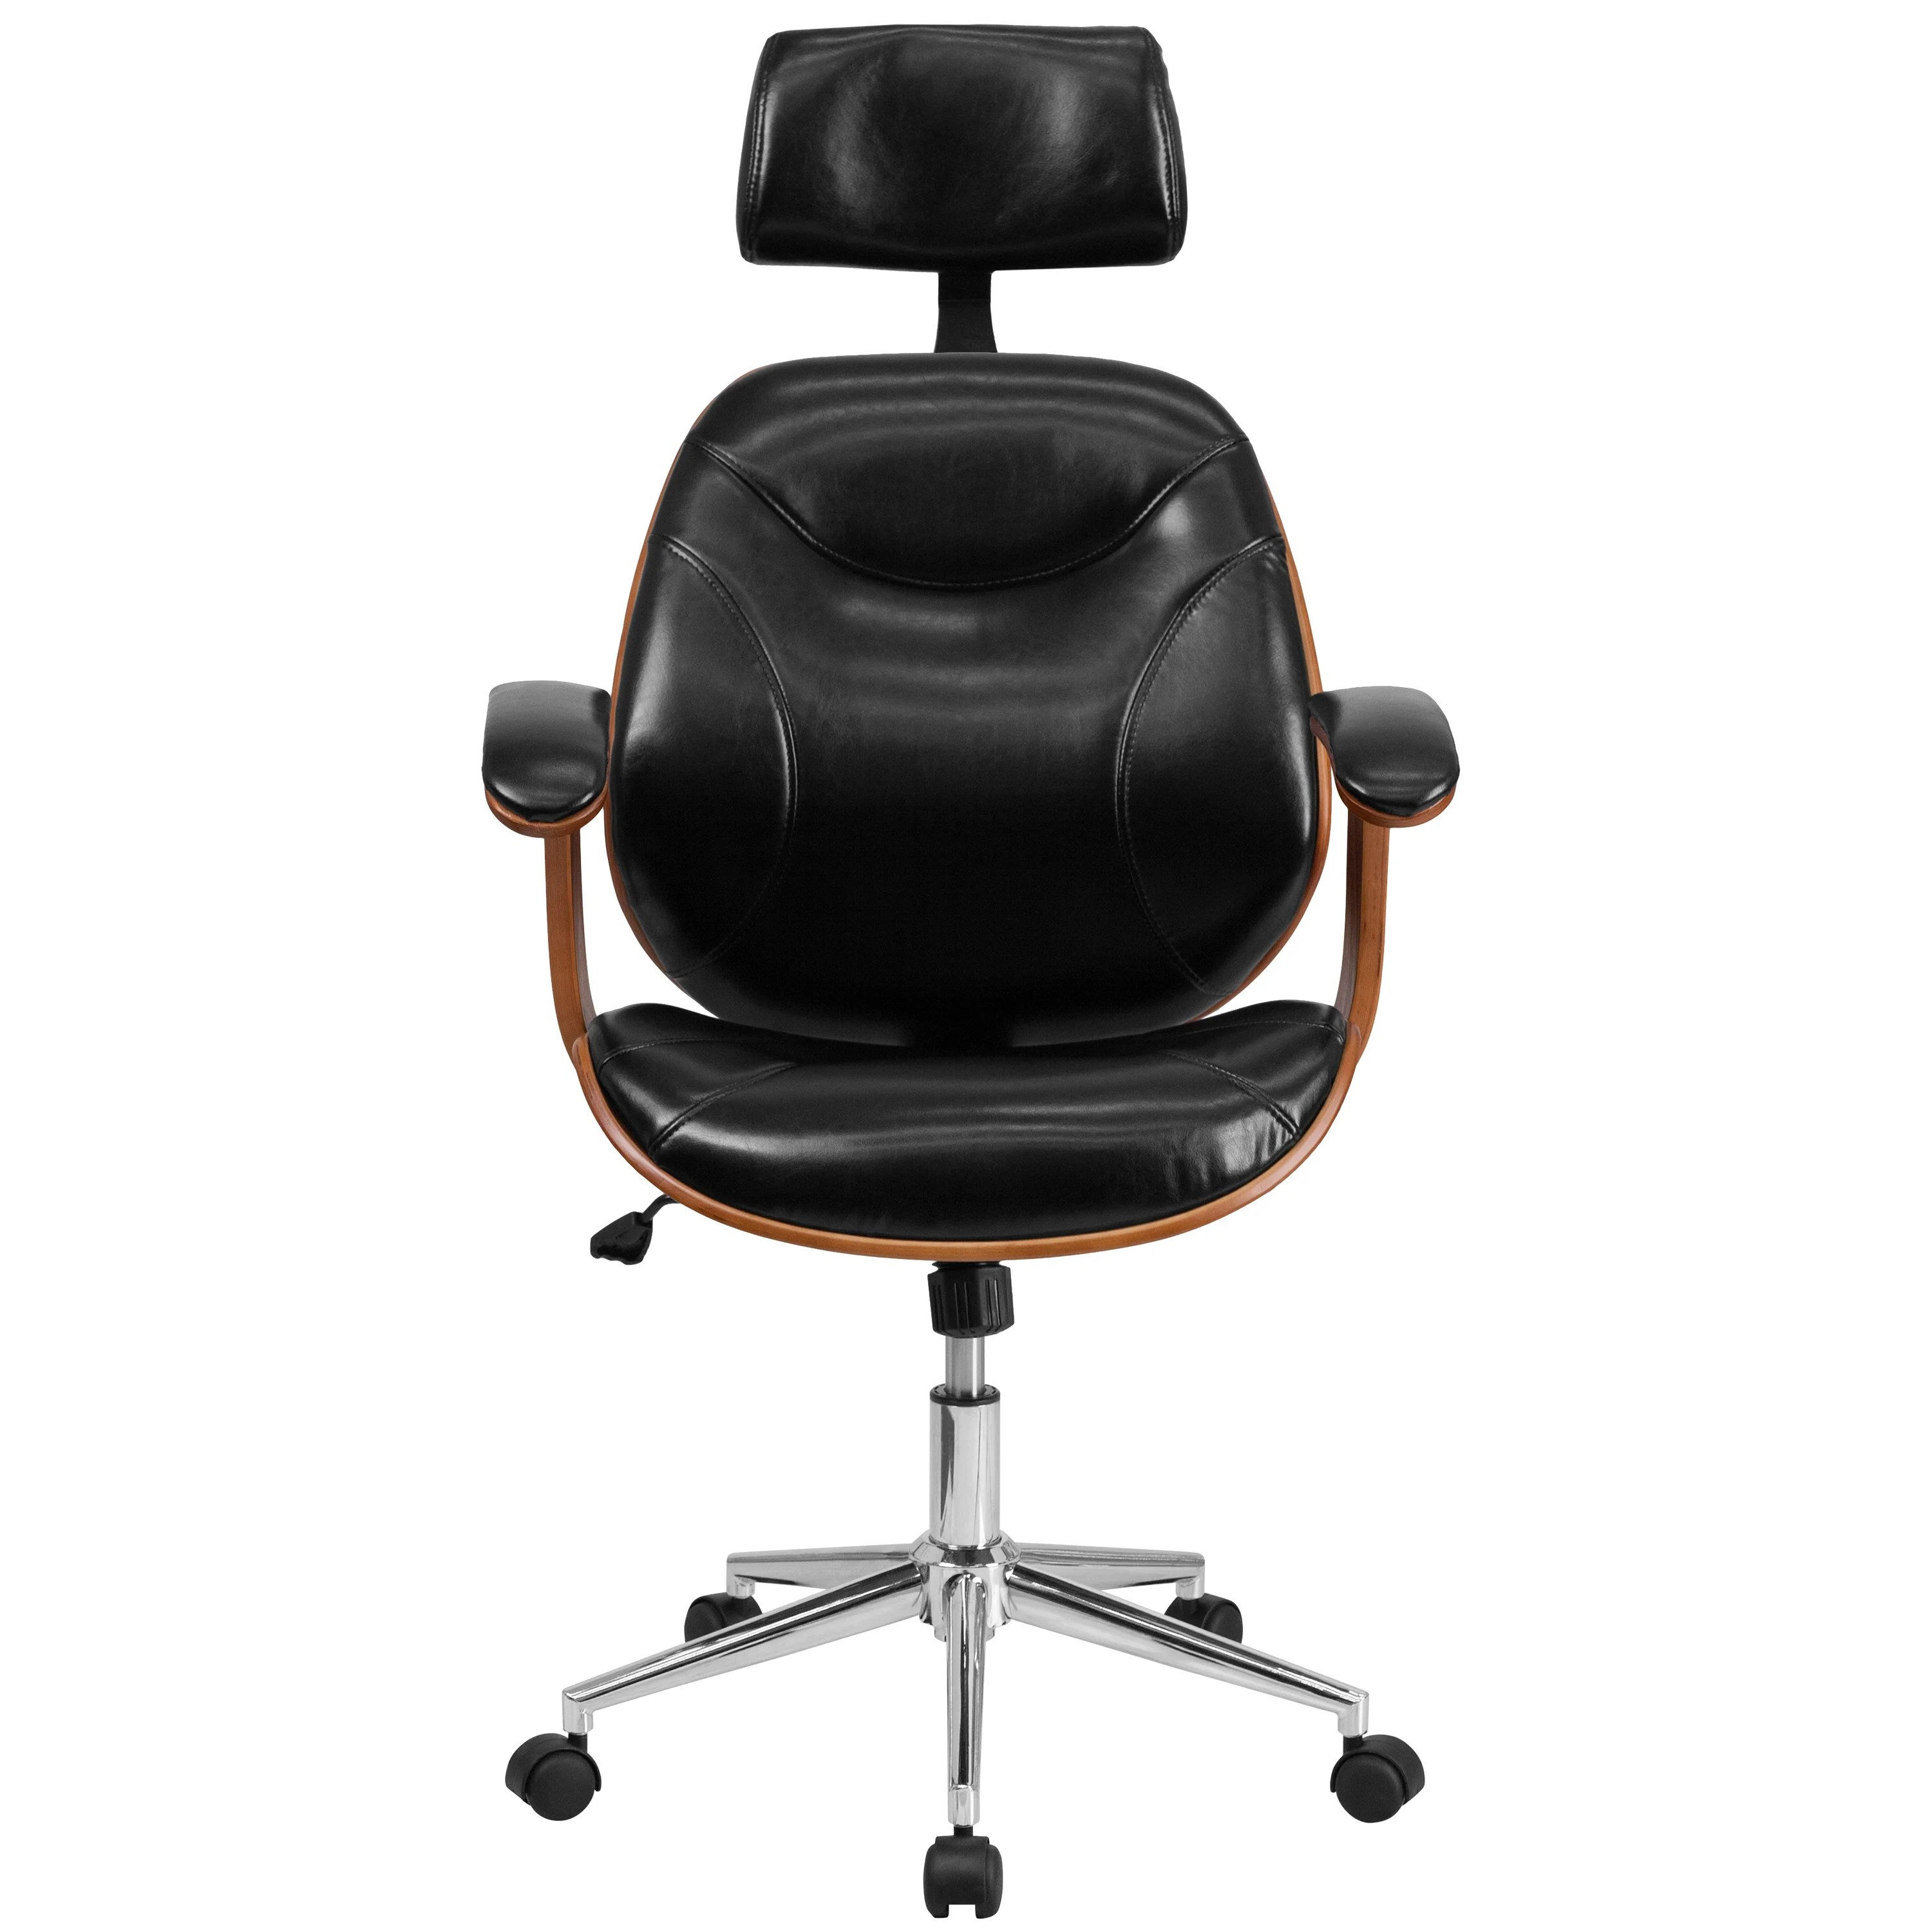 wood and leather executive office chairs salon for cheap shop arly black swivel adjustable chair with headrest free shipping today overstock com 11886762